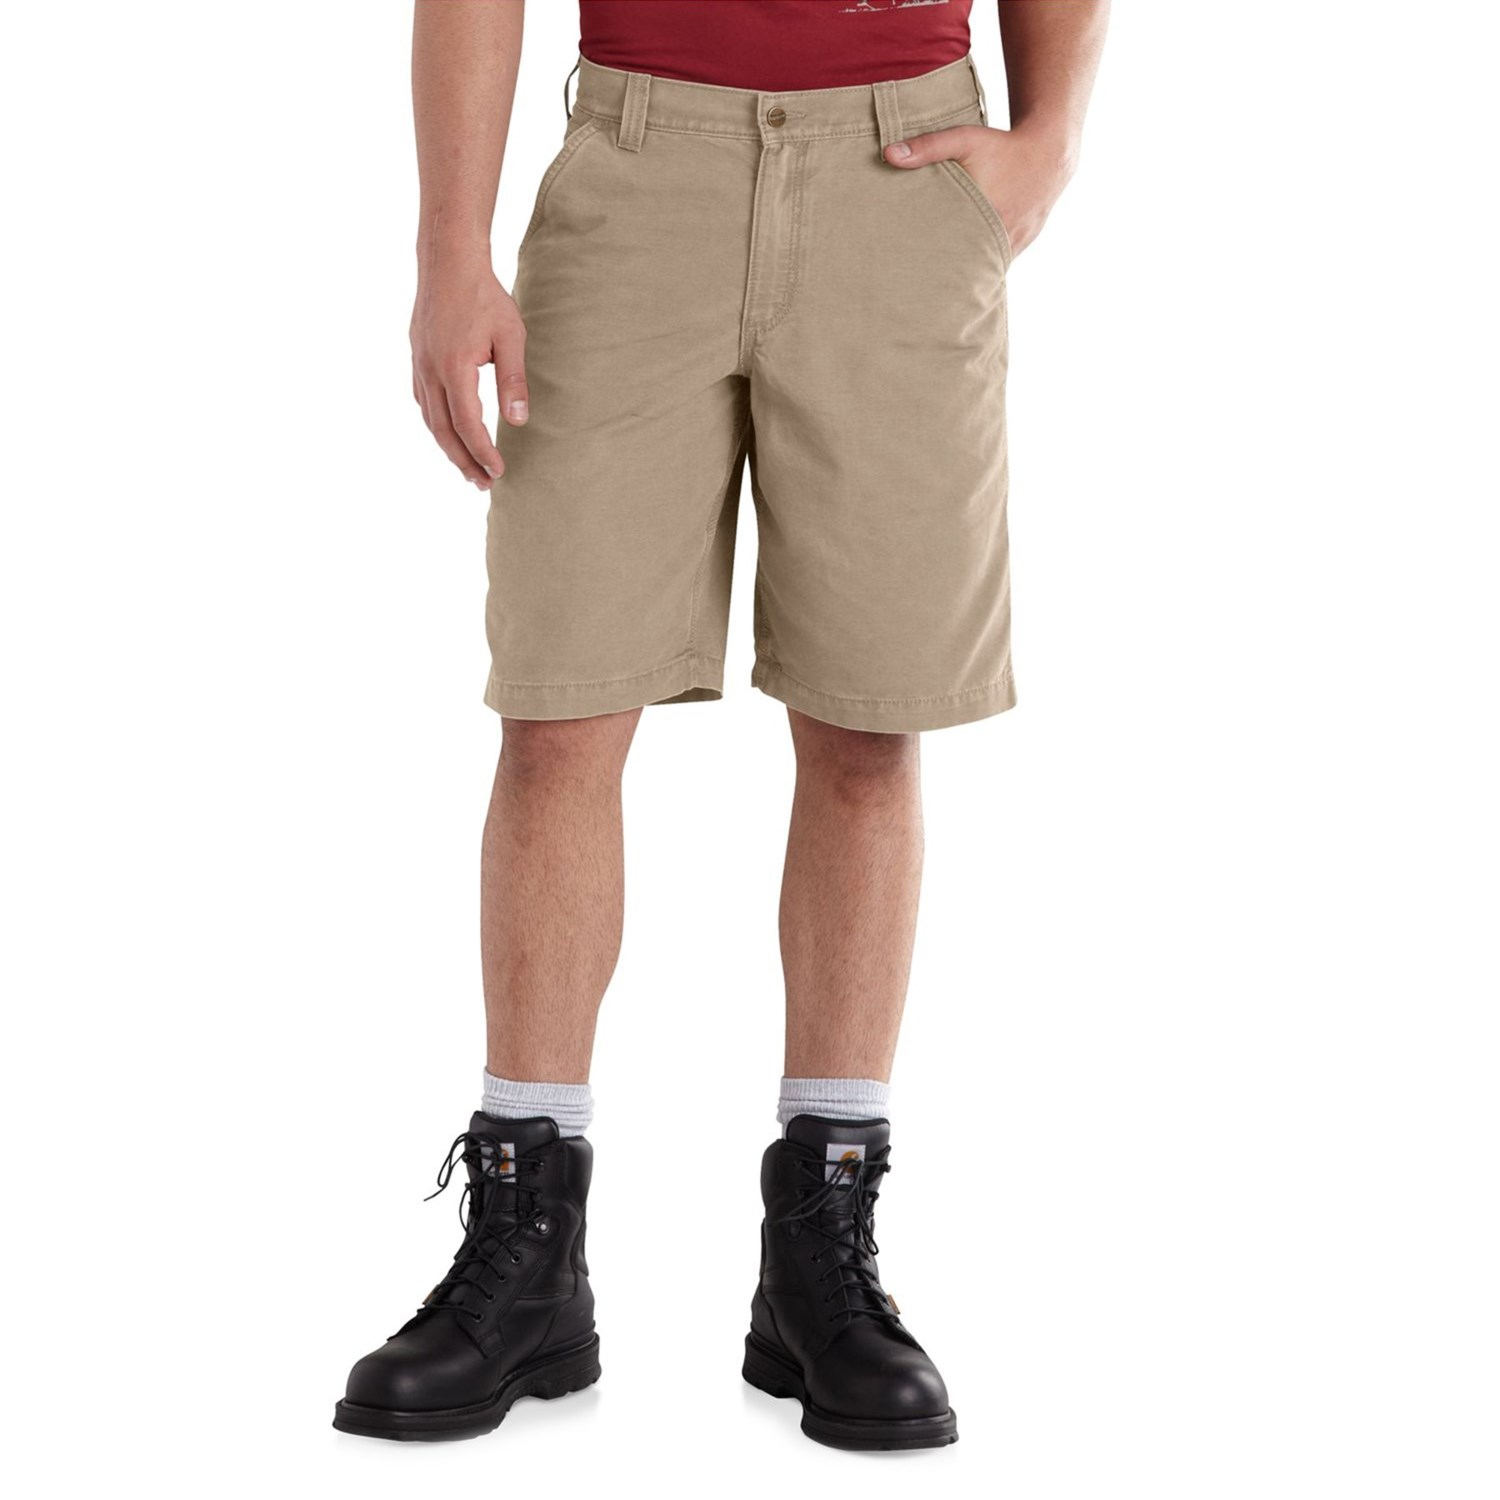 Find great deals on Khaki Shorts at Kohl's today! Sponsored Links Outside companies pay to advertise via these links when specific phrases and words are searched.